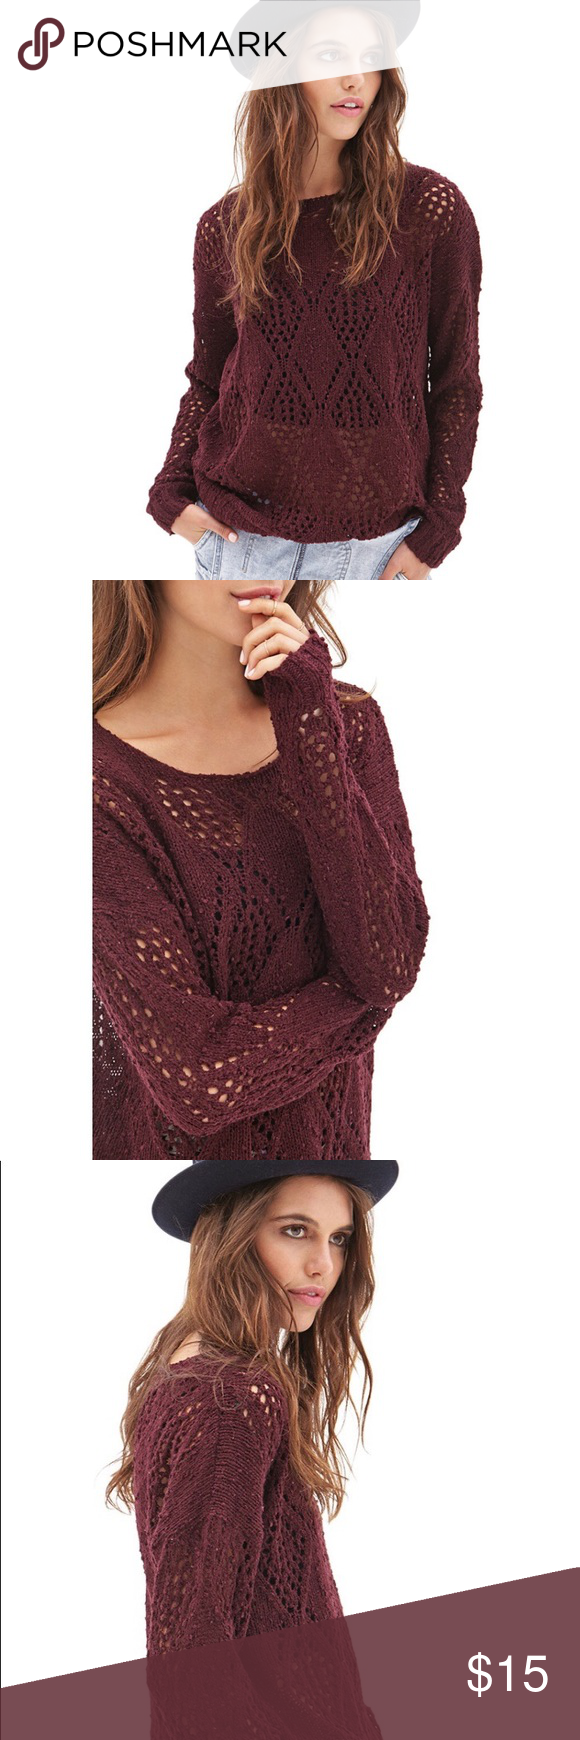 Burgundy Sweater New! Super cute with bralette. Forever 21 ...